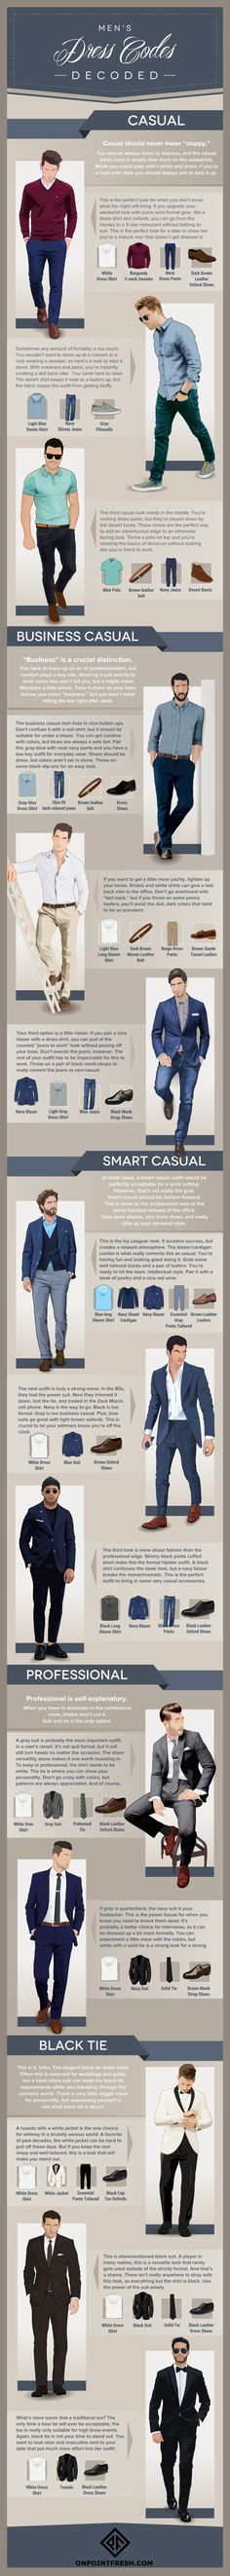 Men's Dress Codes Decoded - all you need to know about what to wear, when [Infographic]